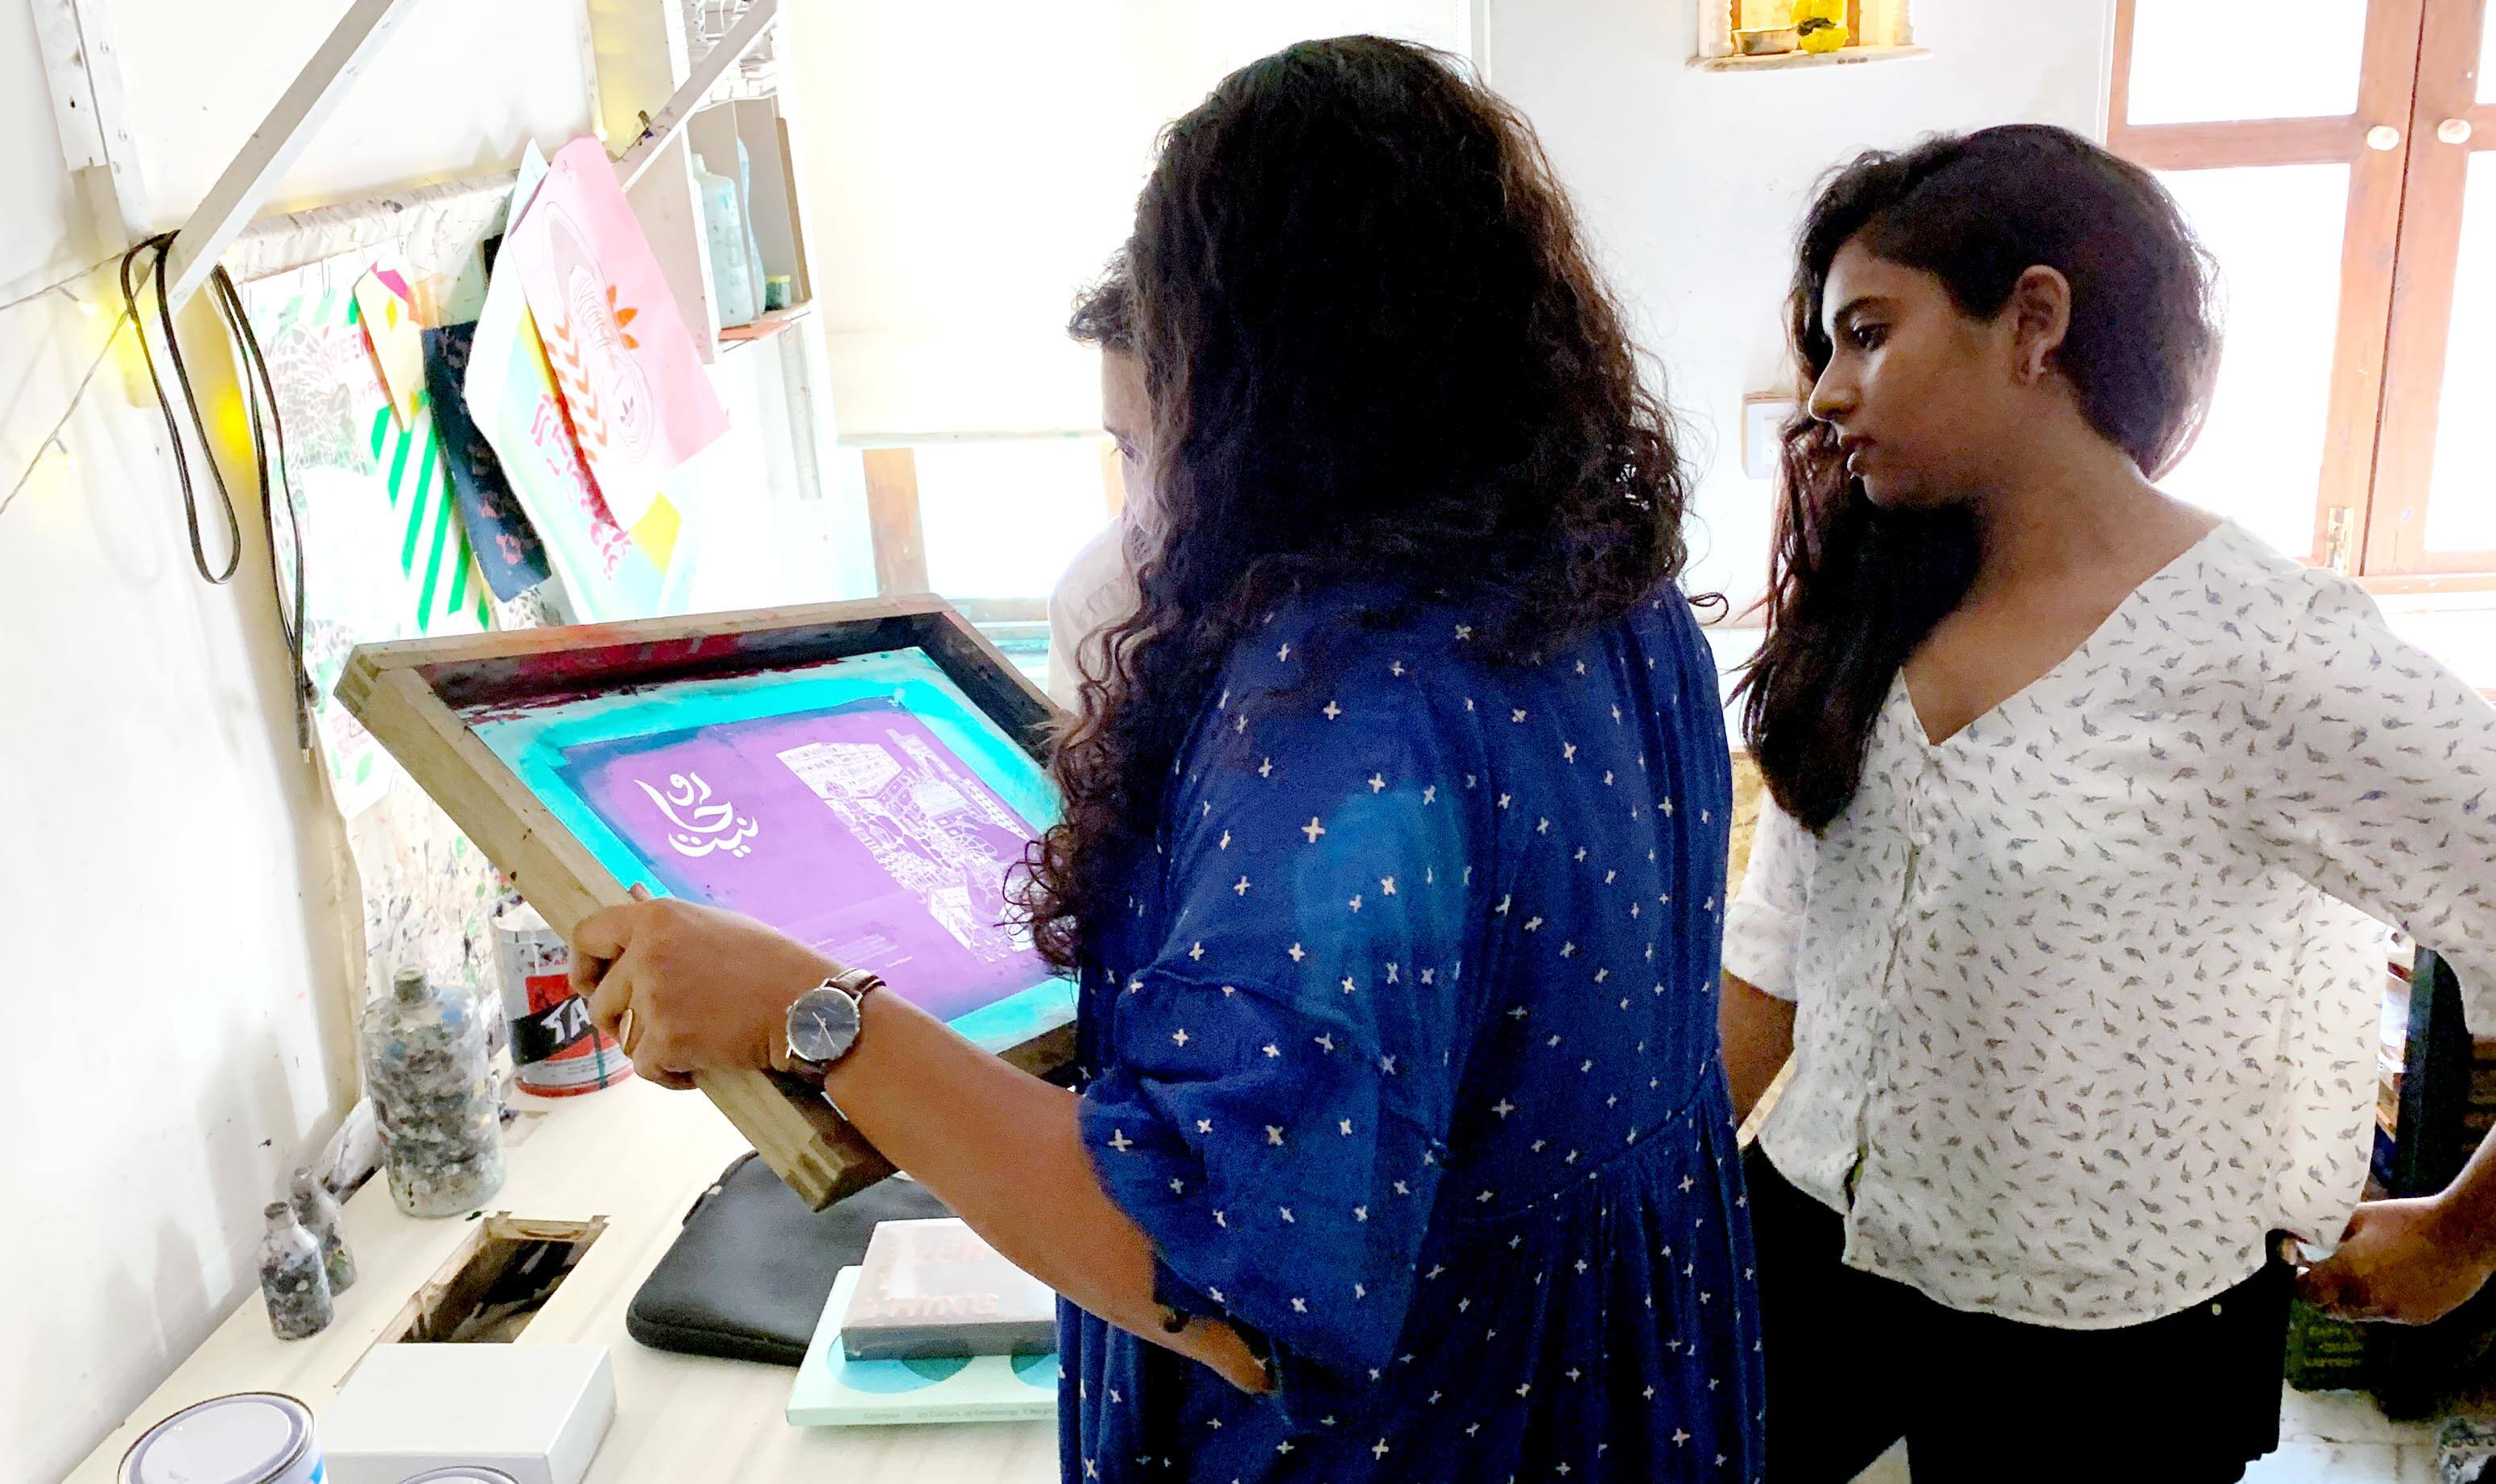 Profile of two ladies with long black wearing  blue and white blouses looking at a developed screen in a printing studio